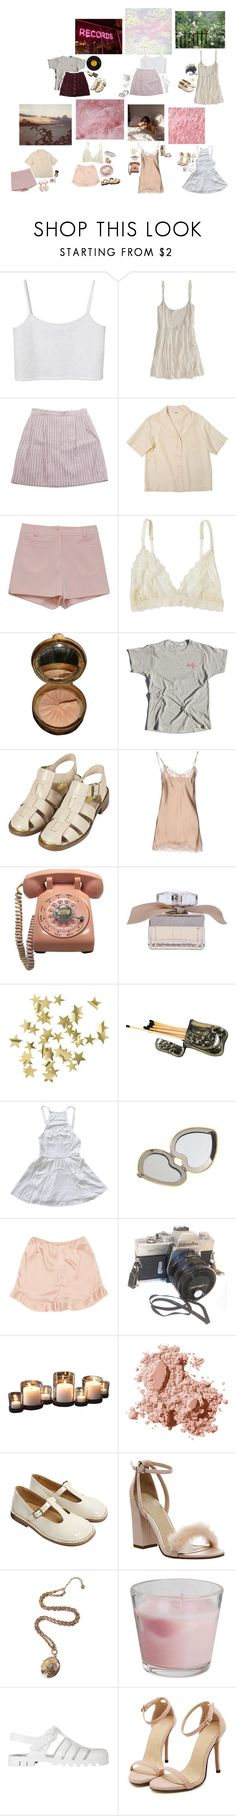 """""""bothc character closet lookbook ♡"""" by sleeping-in-space ❤ liked on Polyvore featuring Monki, American Eagle Outfitters, Retrò, Lonely, Topshop, Falcon & Bloom, Chloé, H&M, Aerie and Miu Miu"""